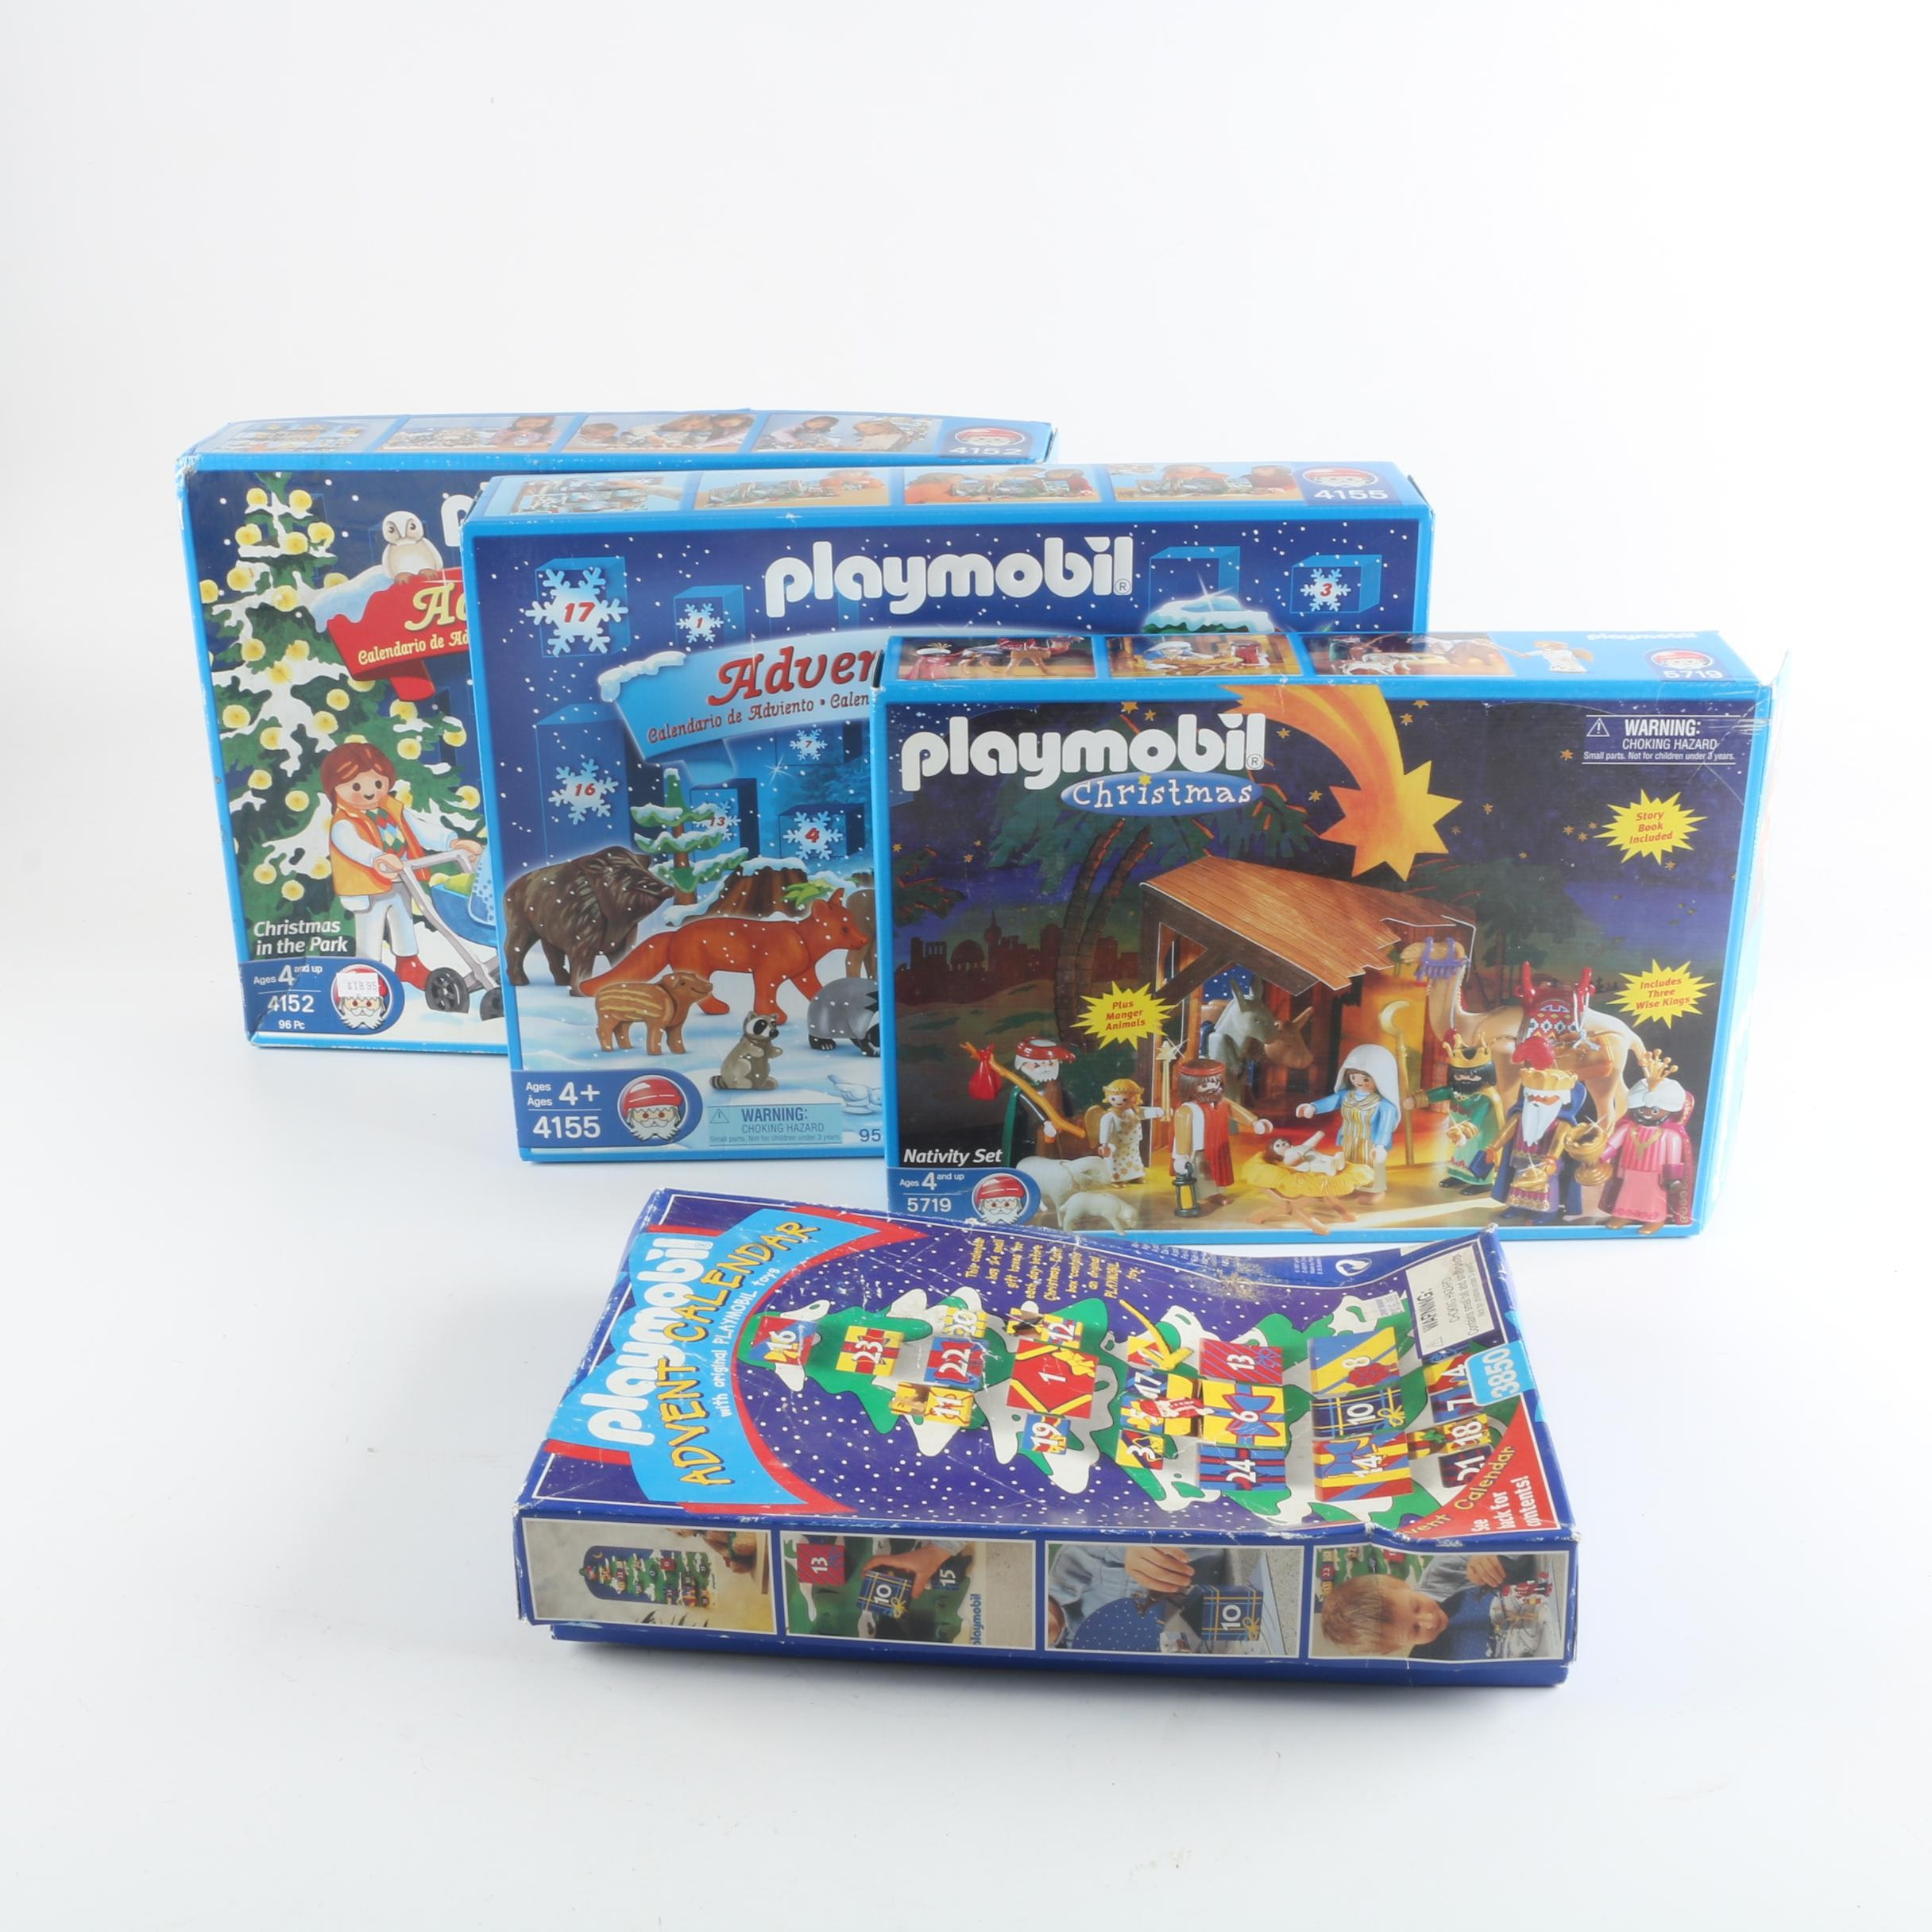 Playmobil Christmas Themed Sets Including Advent Calendars